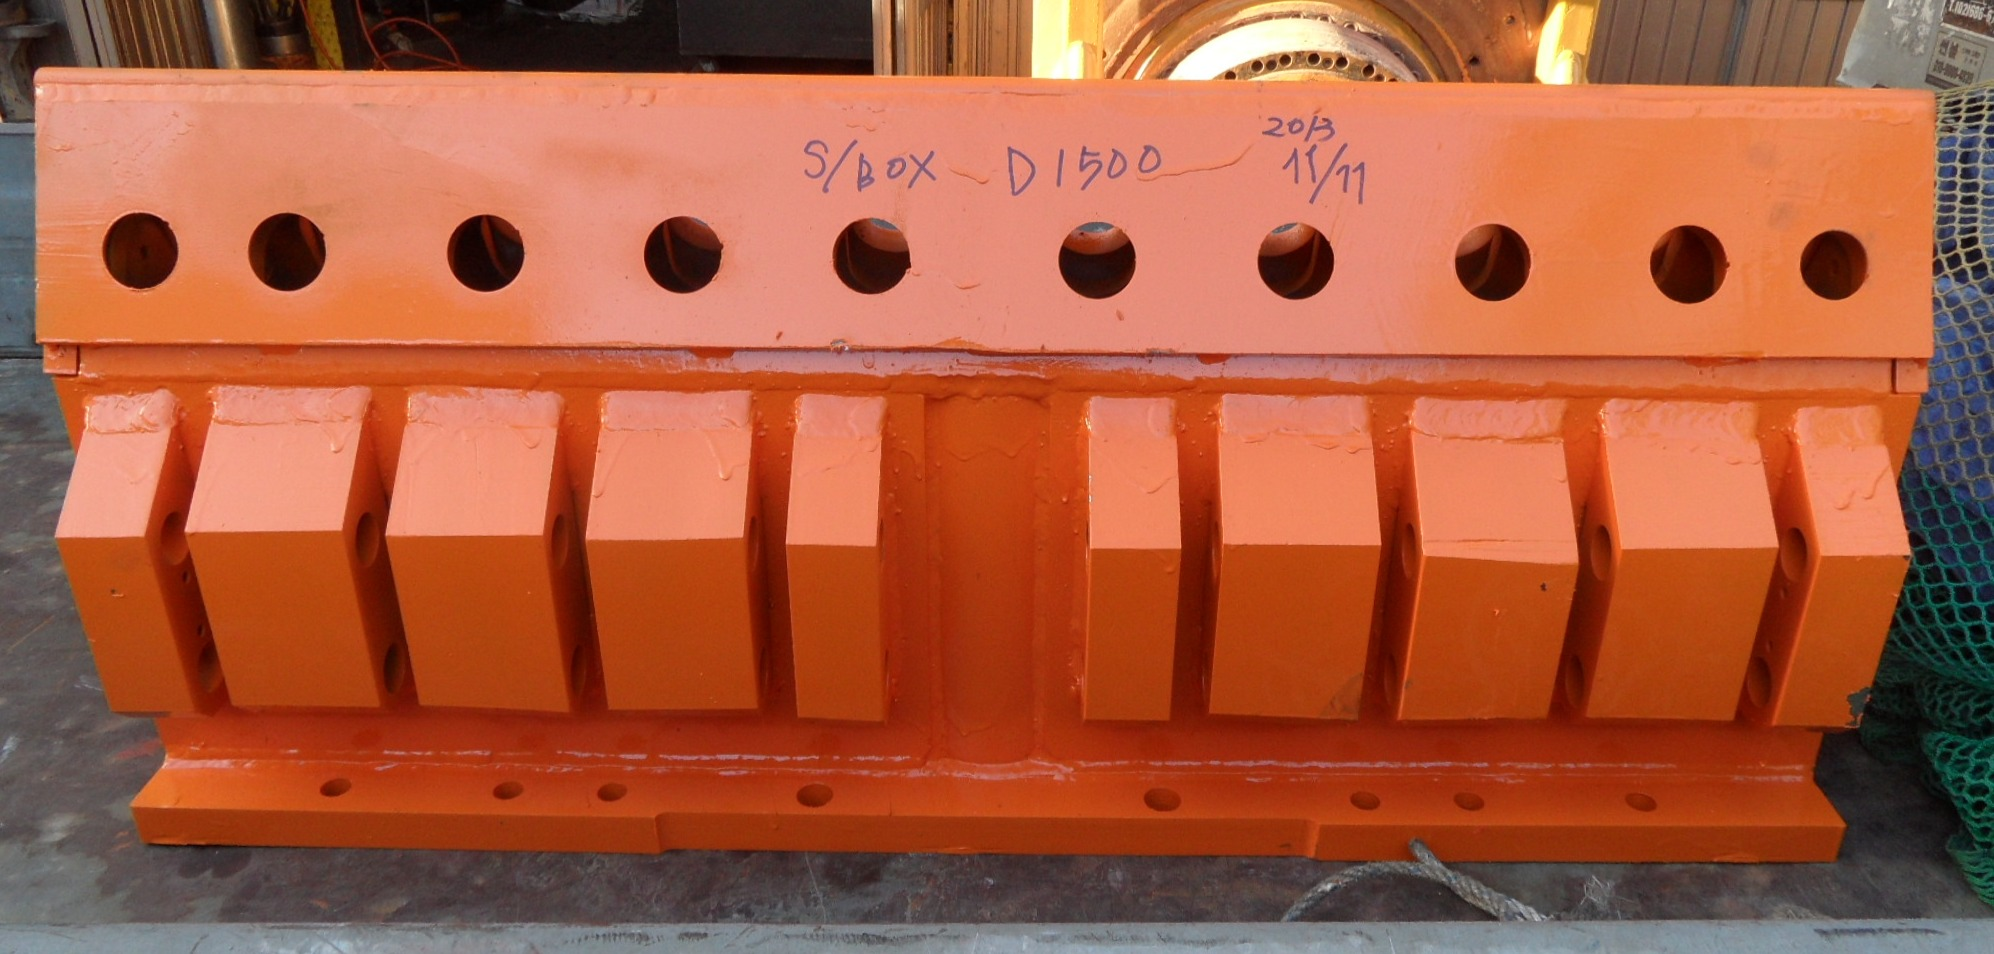 Suction Box D1500